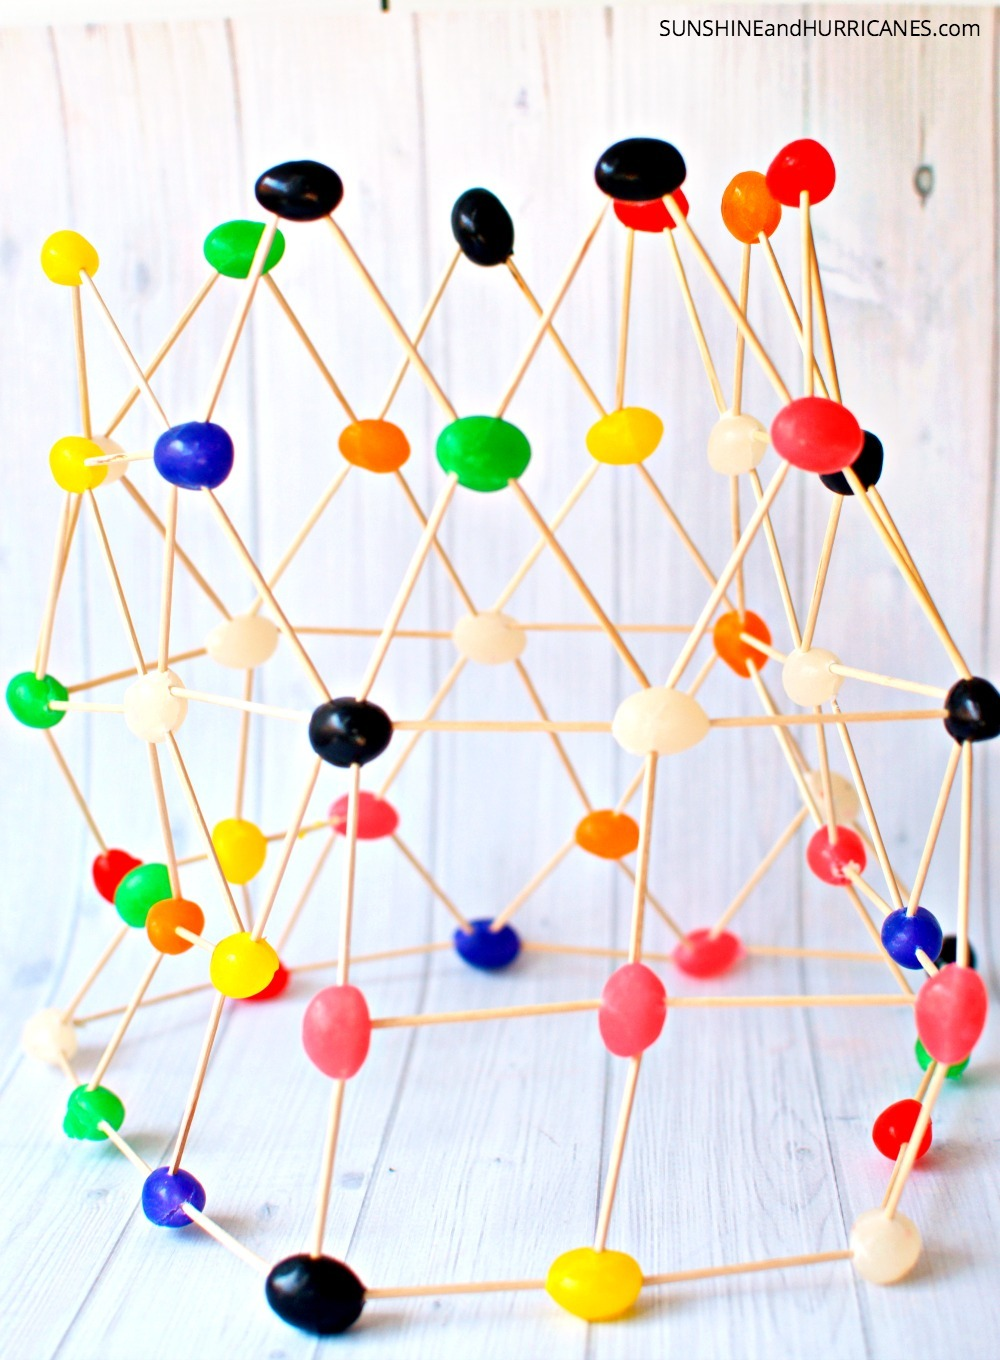 Looking for an activity for your children that is both educational and will keep them busy for at least an hour? These jellybean engineering projects are a great way to help children learn the concepts of building in a fun and interactive way. STEM Activities for Kids. SunshineandHurricanes.com